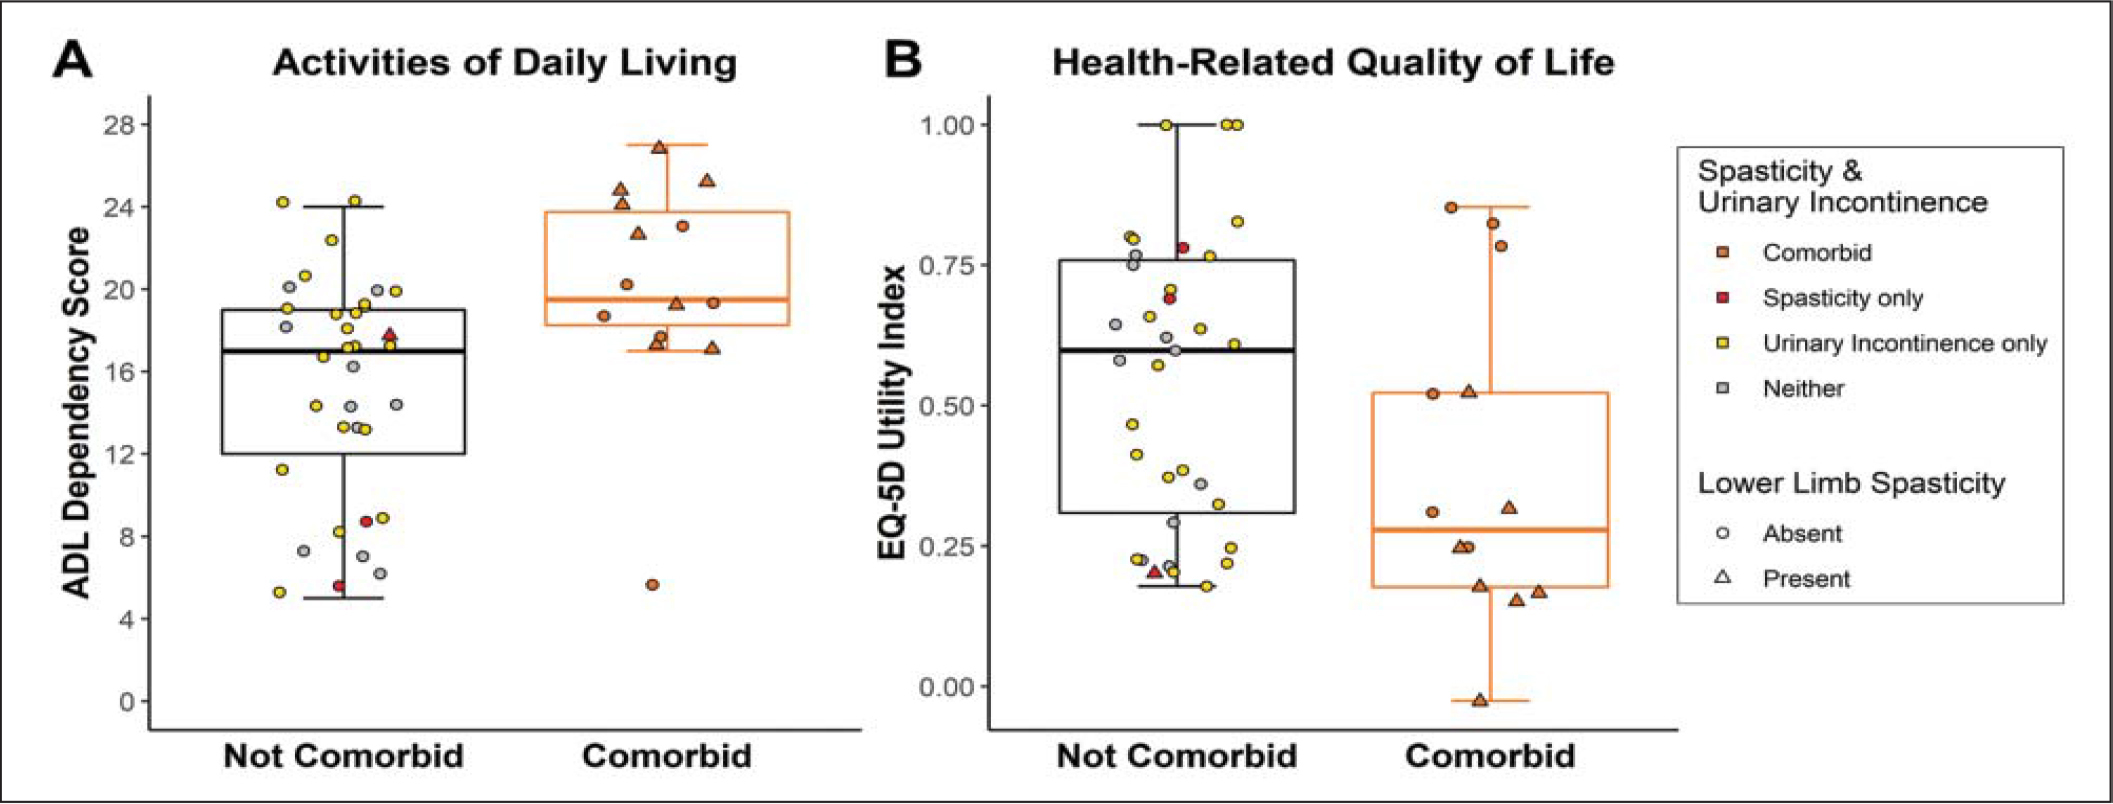 (A) Activities of daily living (ADL) dependency scores in participants with versus without comorbid spasticity and urinary incontinence. A higher dependency score indicates greater need for assistance in daily tasks. (B) Health-related quality of life in participants with versus without comorbid spasticity and urinary incontinence. A lower EQ-5D utility index indicates a lower quality of life. Triangles denote participants with lower limb spasticity.